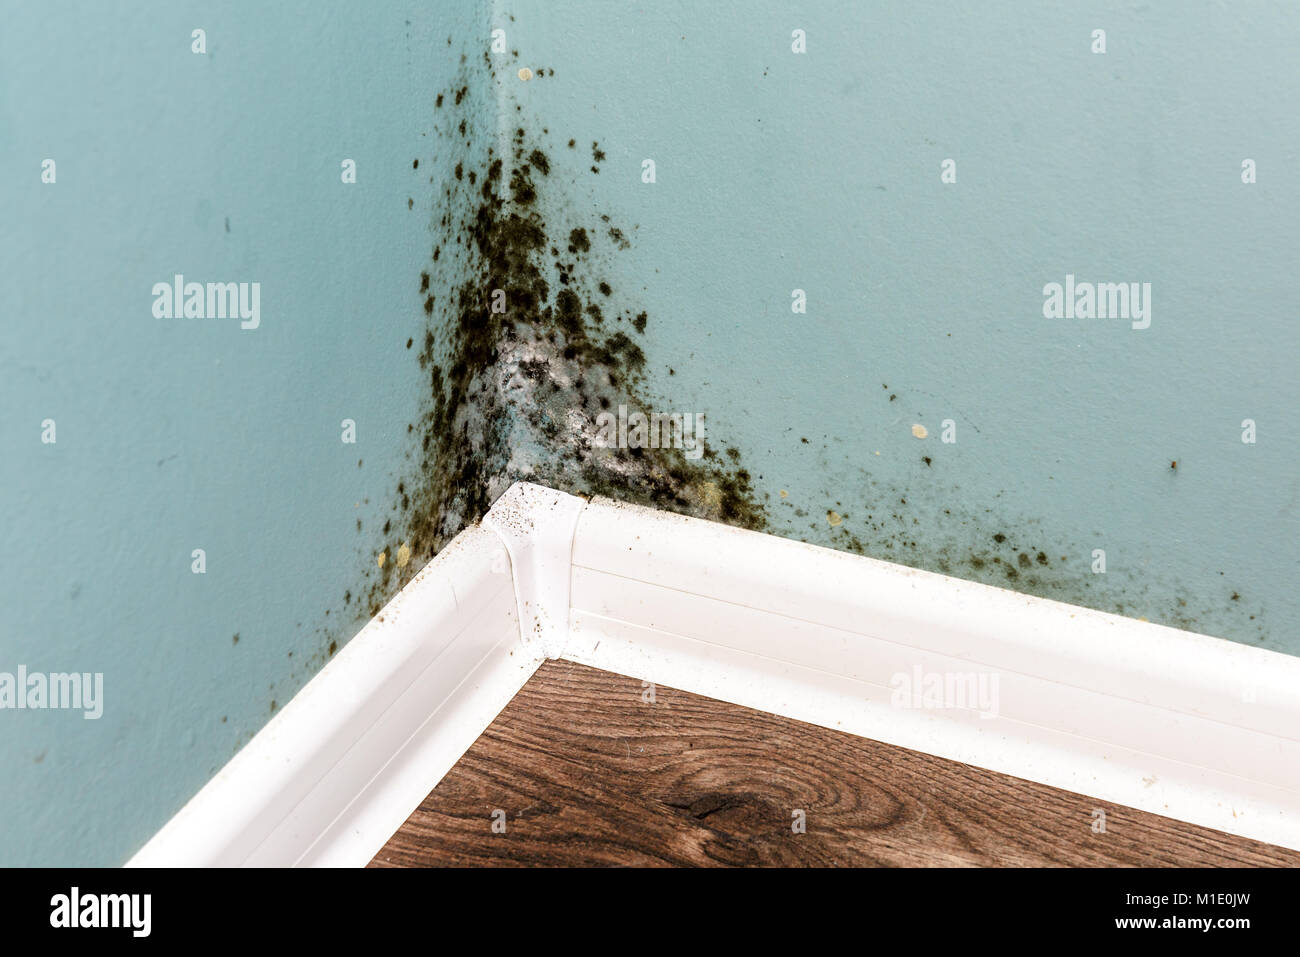 Black mould on wall closeup - Stock Image